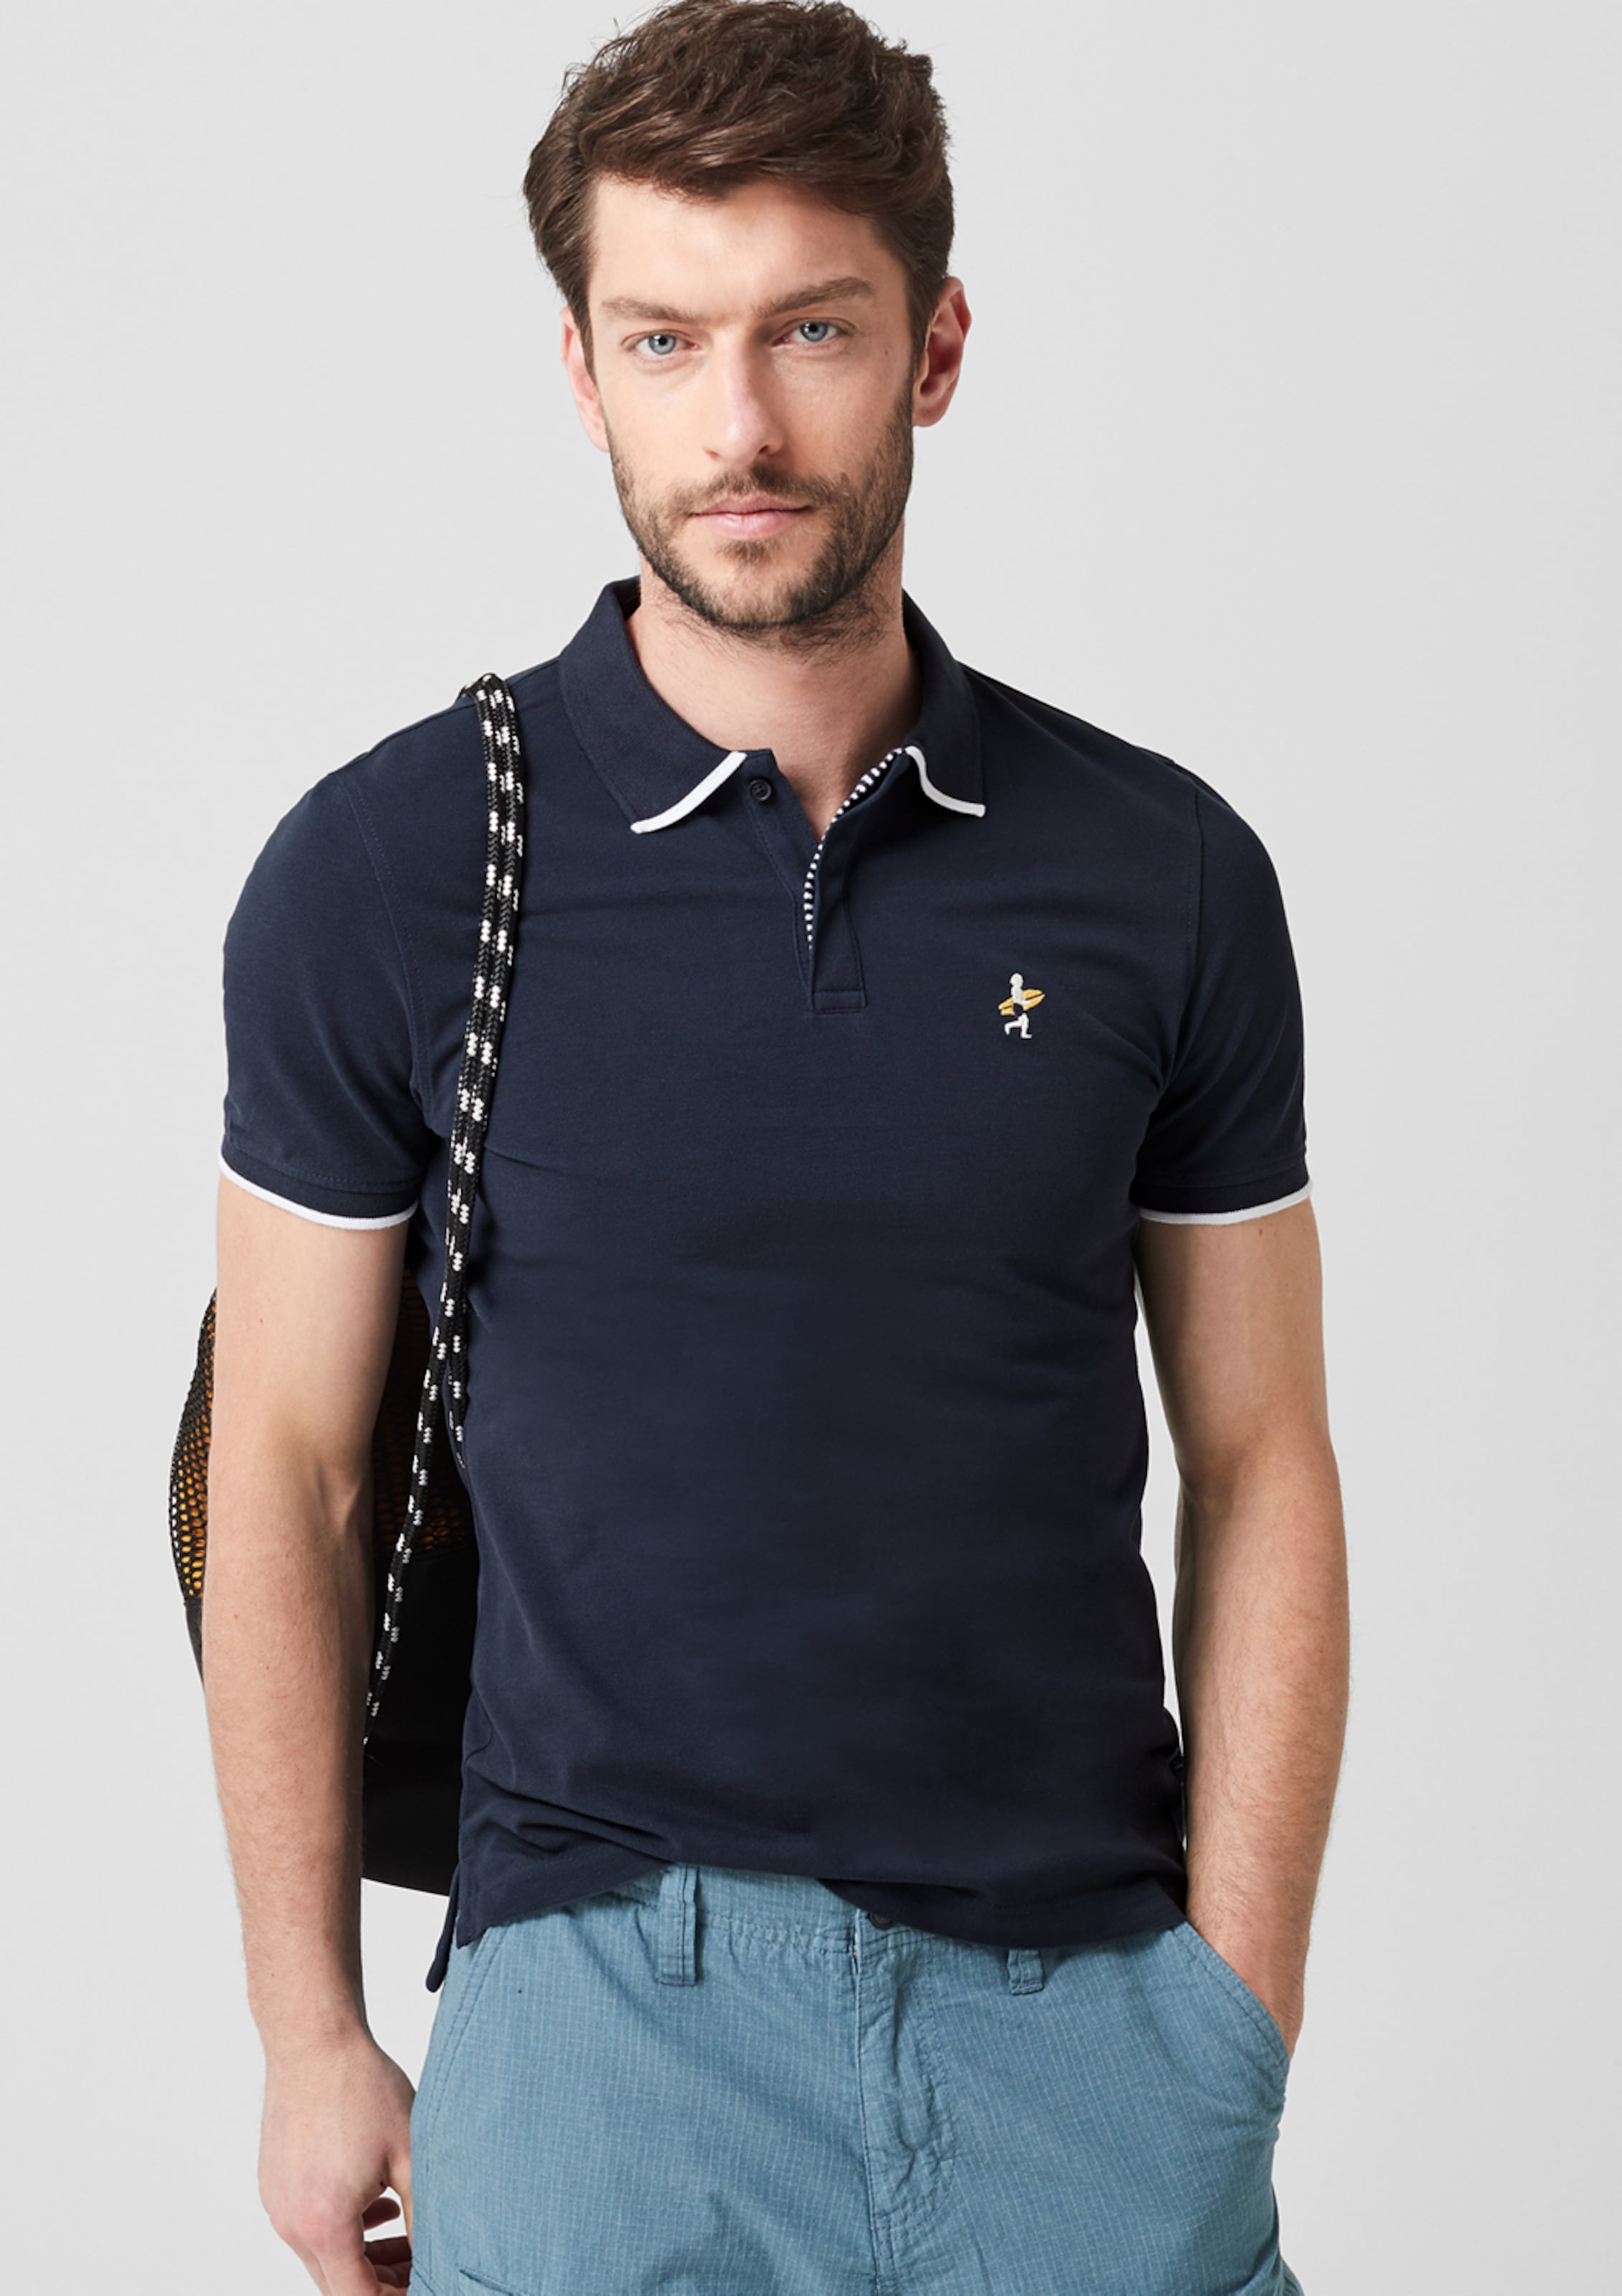 Red Poloshirt S oliver Nachtblau Label In 5LjqRc34A